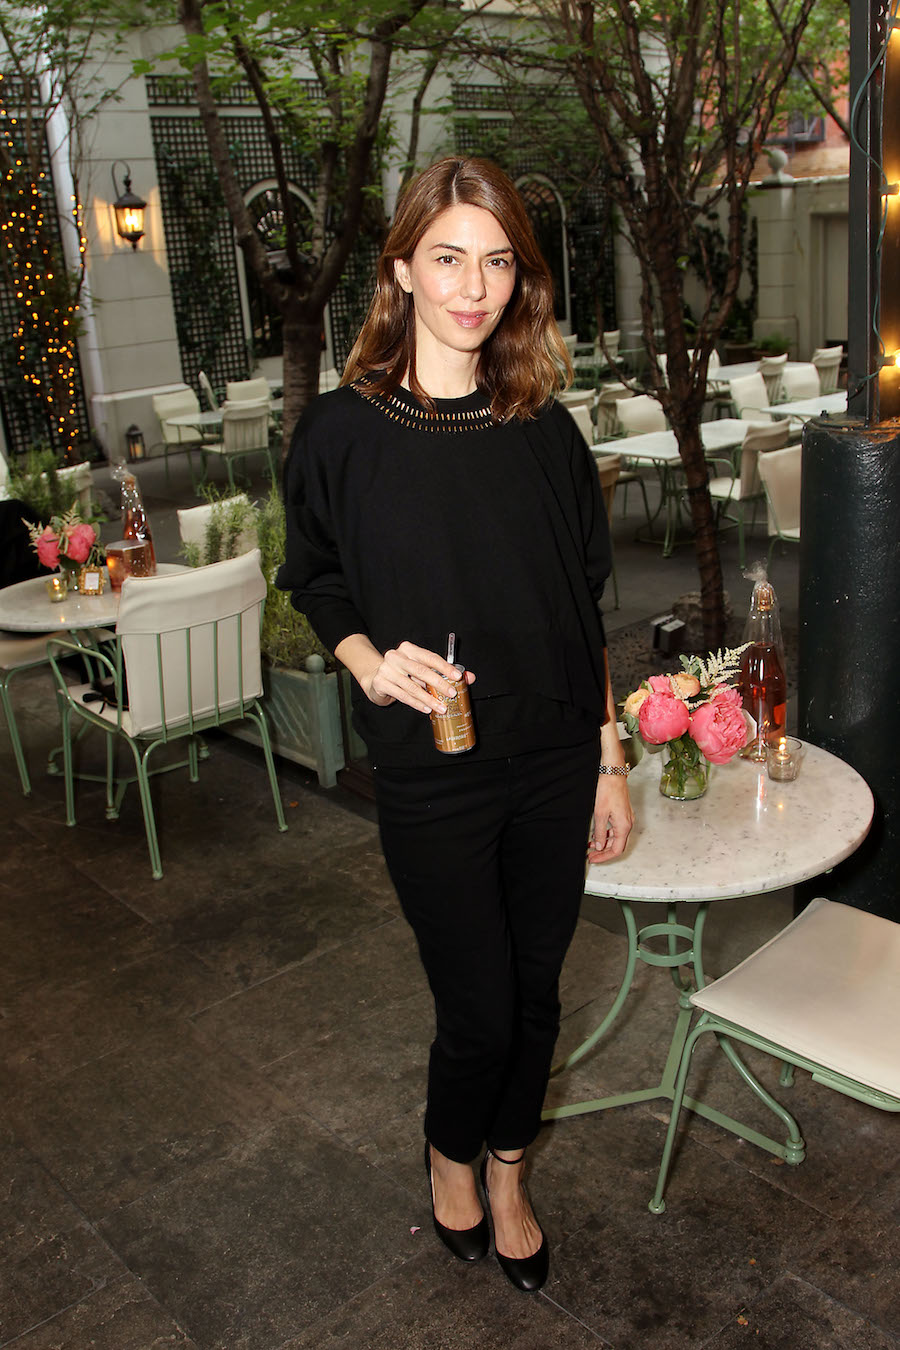 Sofia Coppola at the unveiling of the new Sofia Brut Rose in New York City